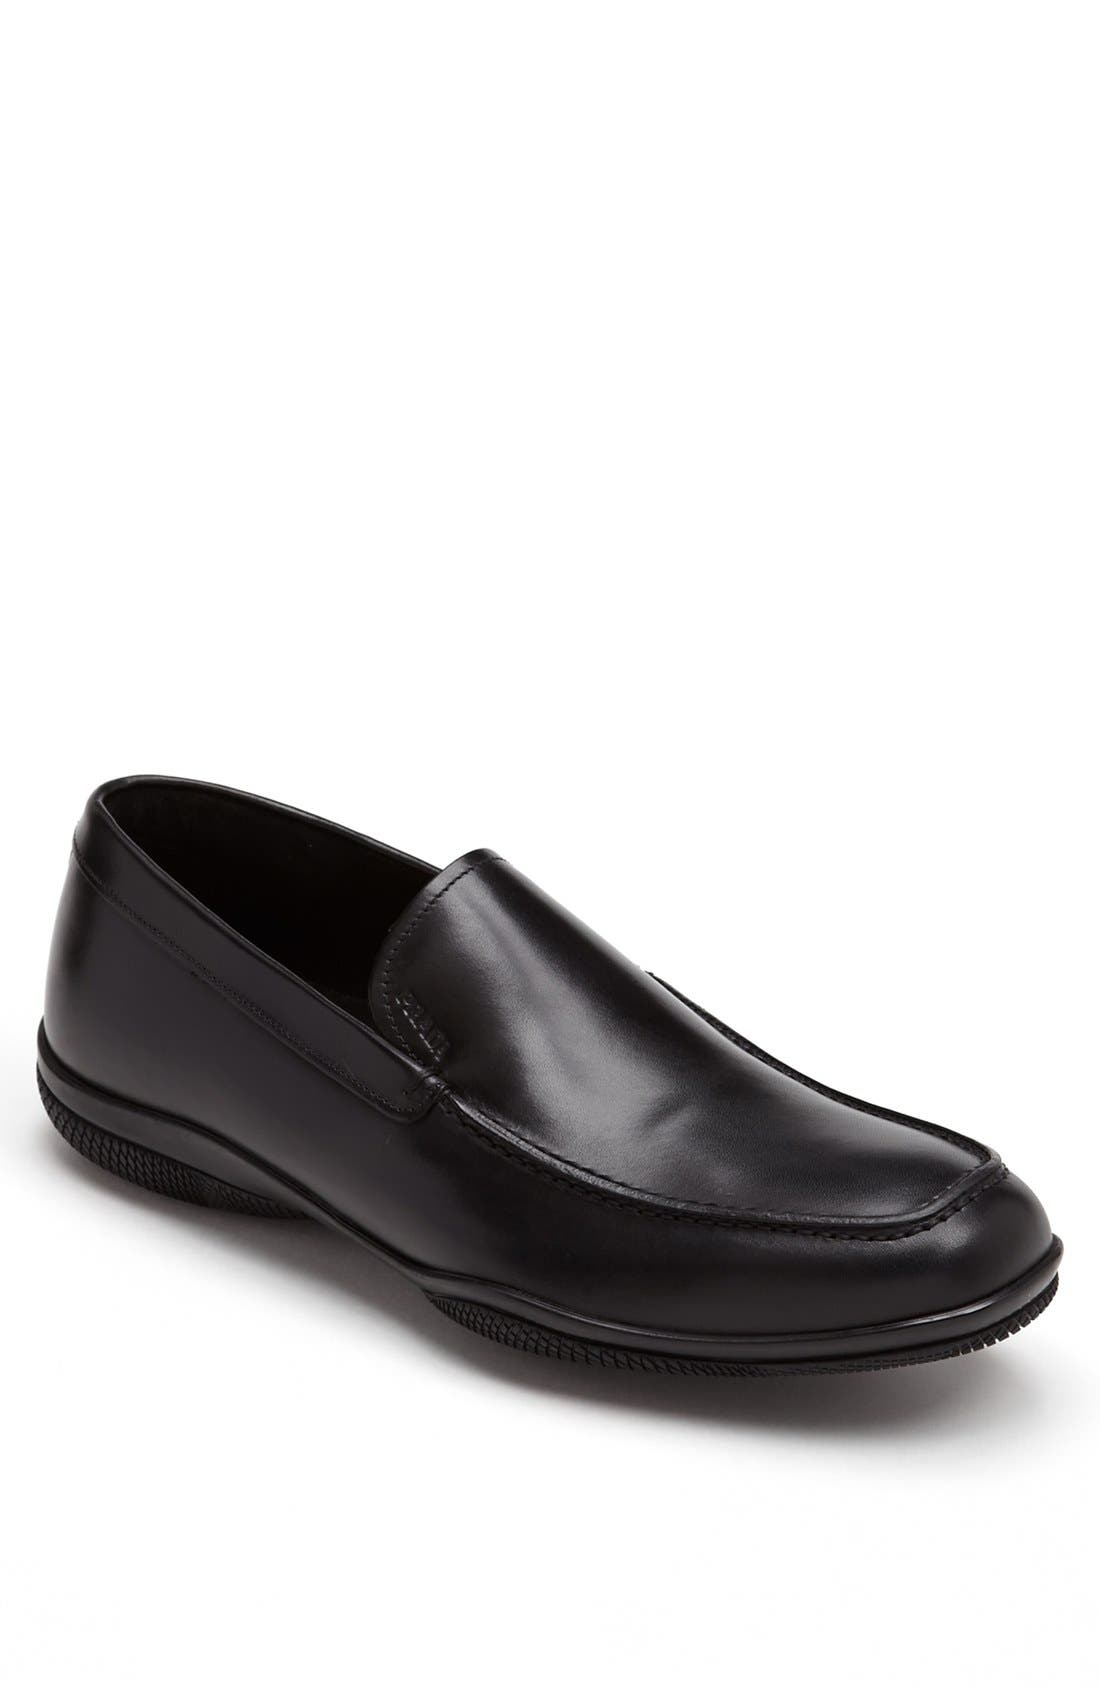 Main Image - Prada Leather Slip-On (Men)